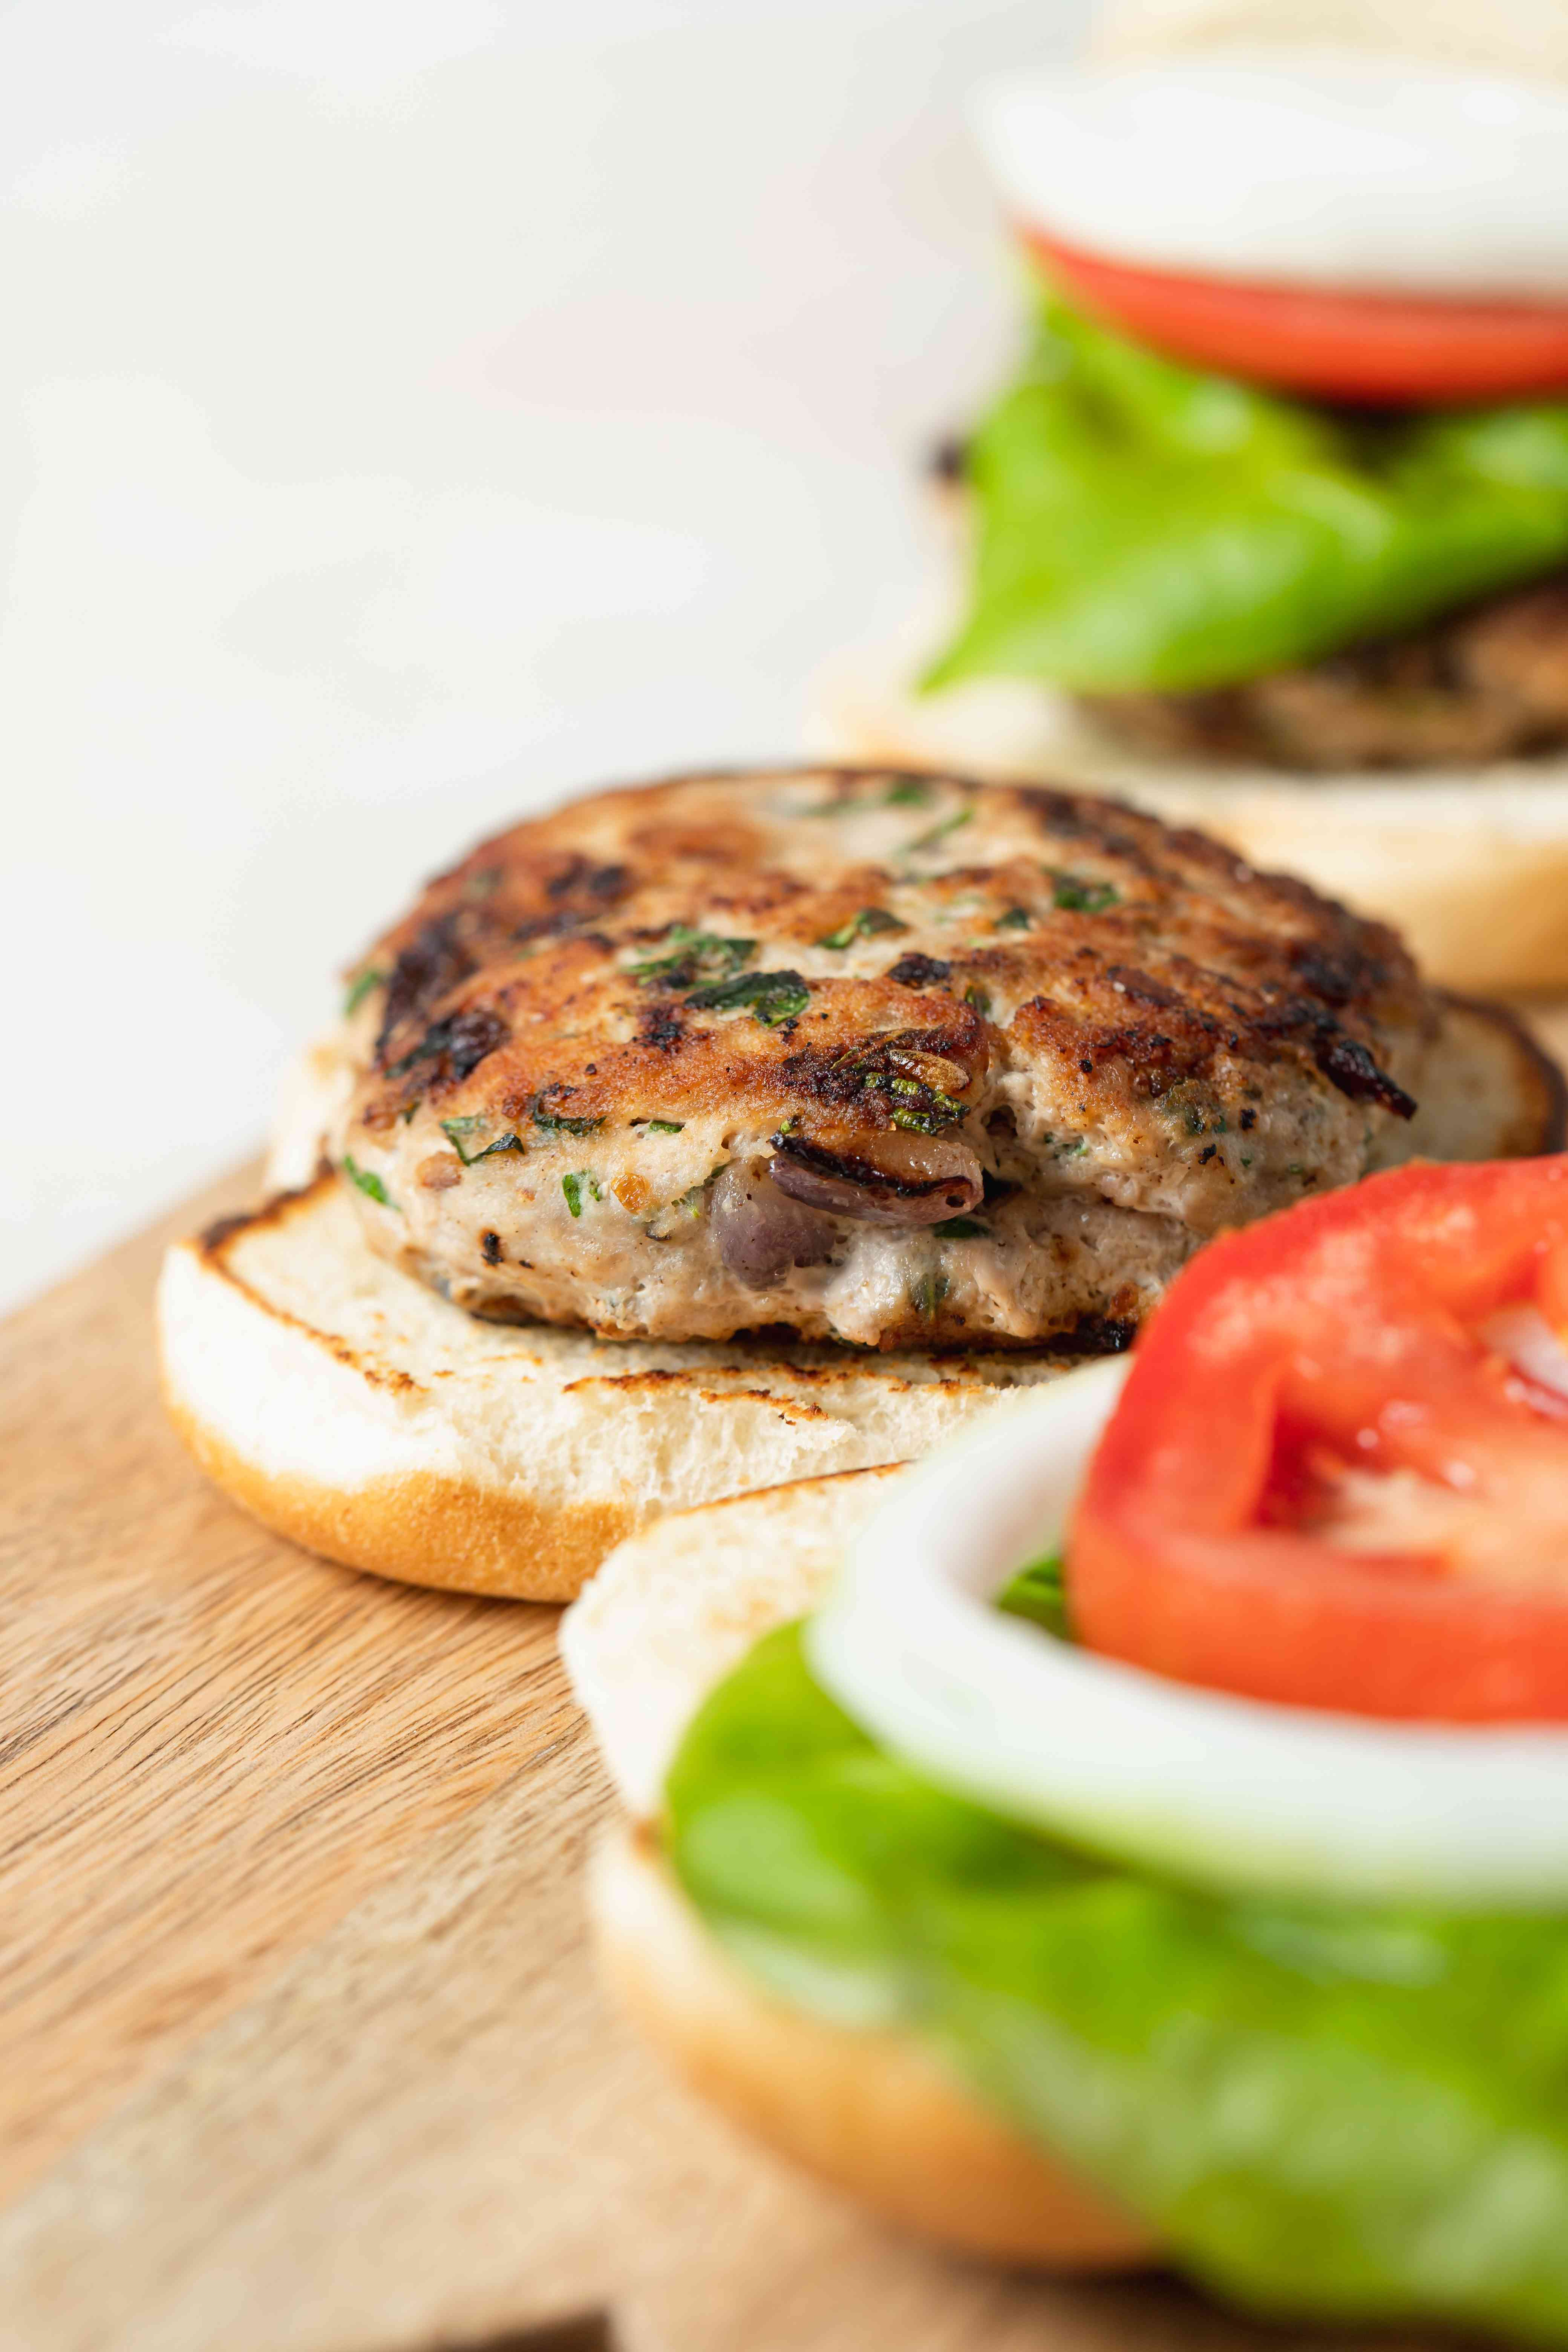 Side view close up of partially assembled turkey burgers.